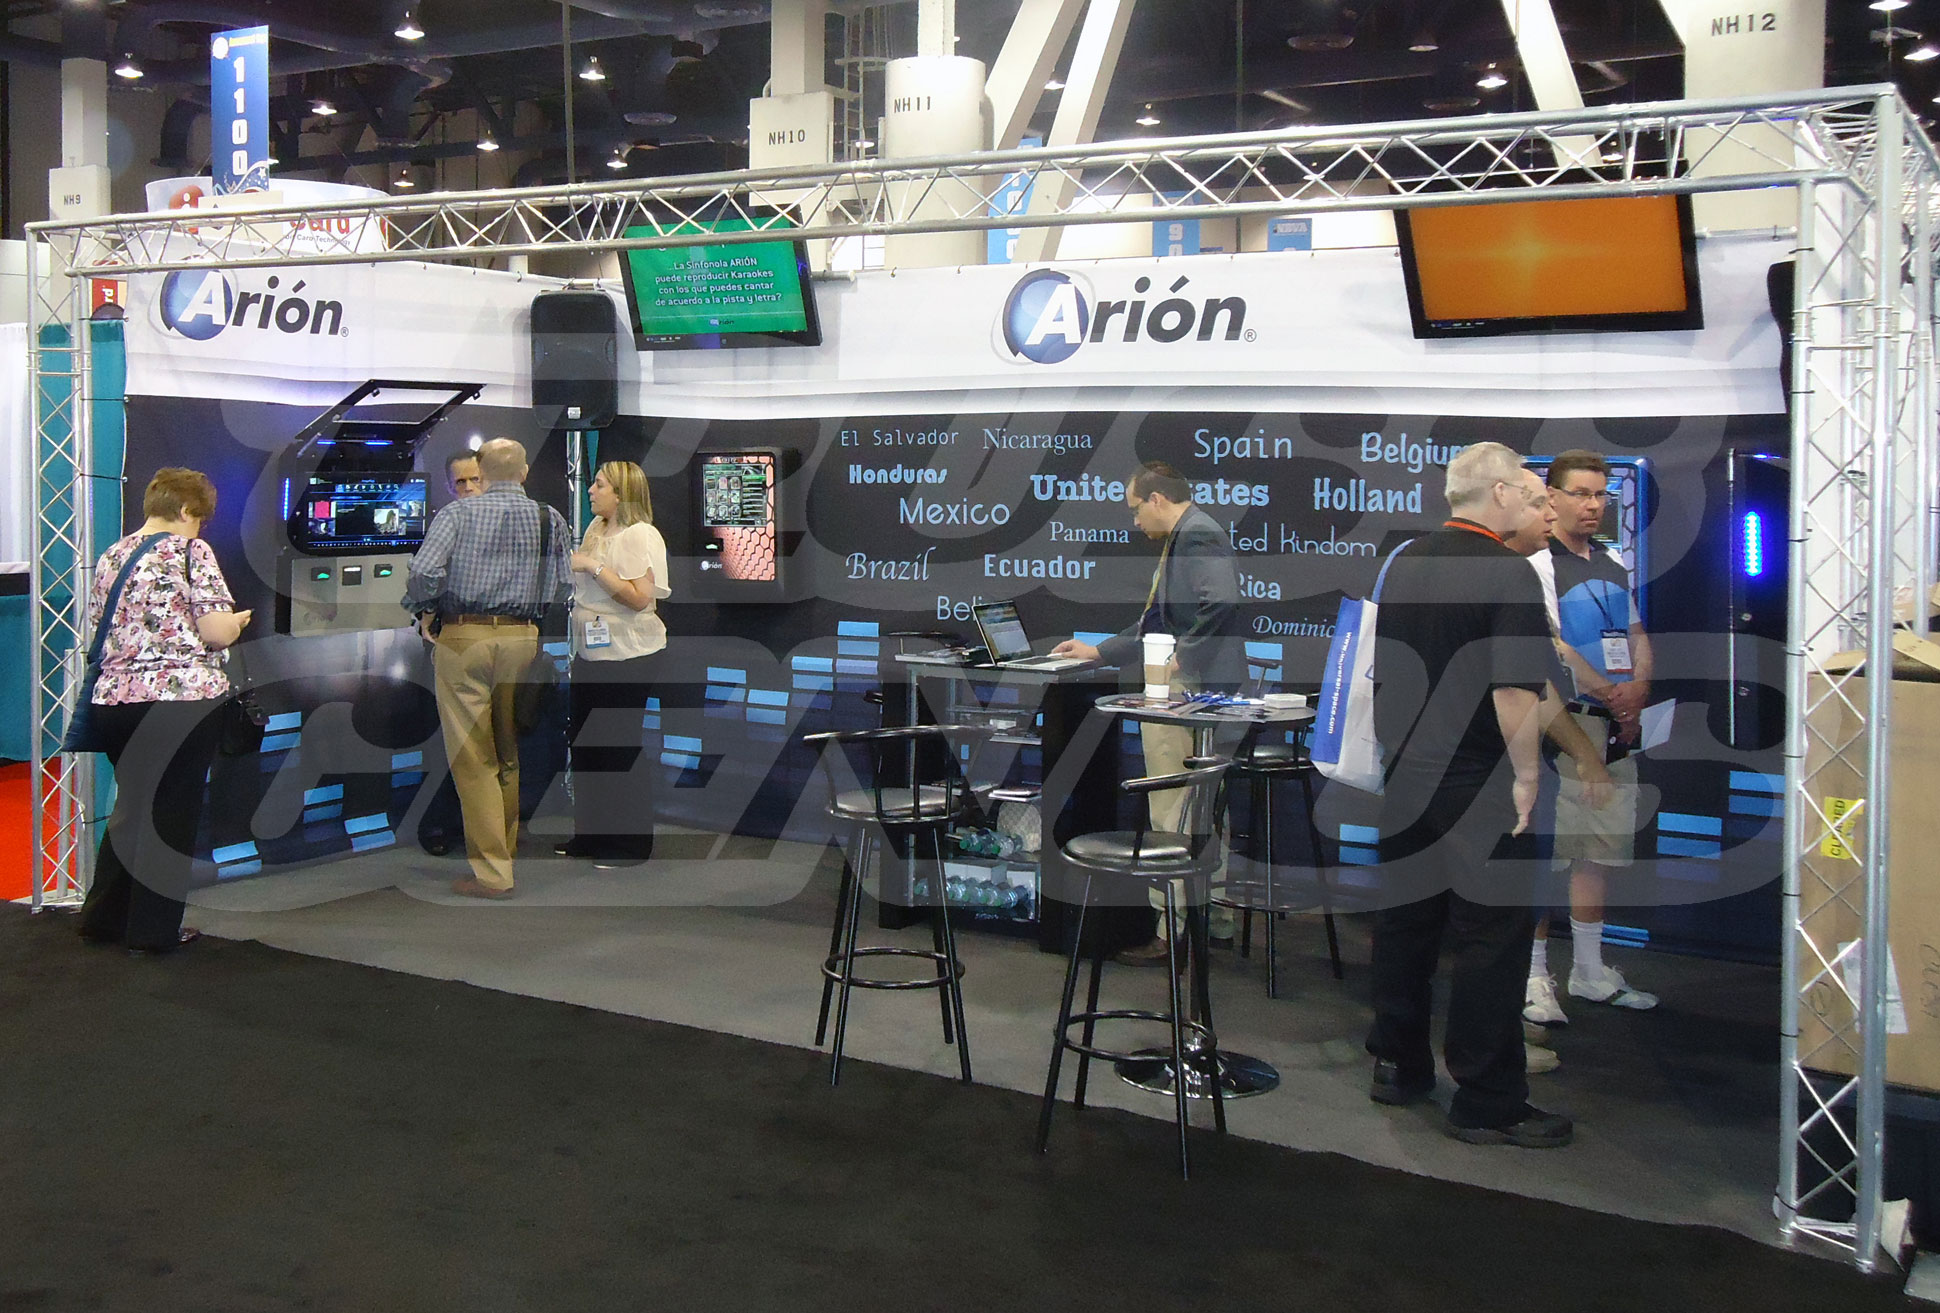 arion, amusement expo, las vegas, trade shows, truss genius, global truss, aluminum truss, triangular truss, f23 trussing, trade show booth, display, exhibit, mini truss